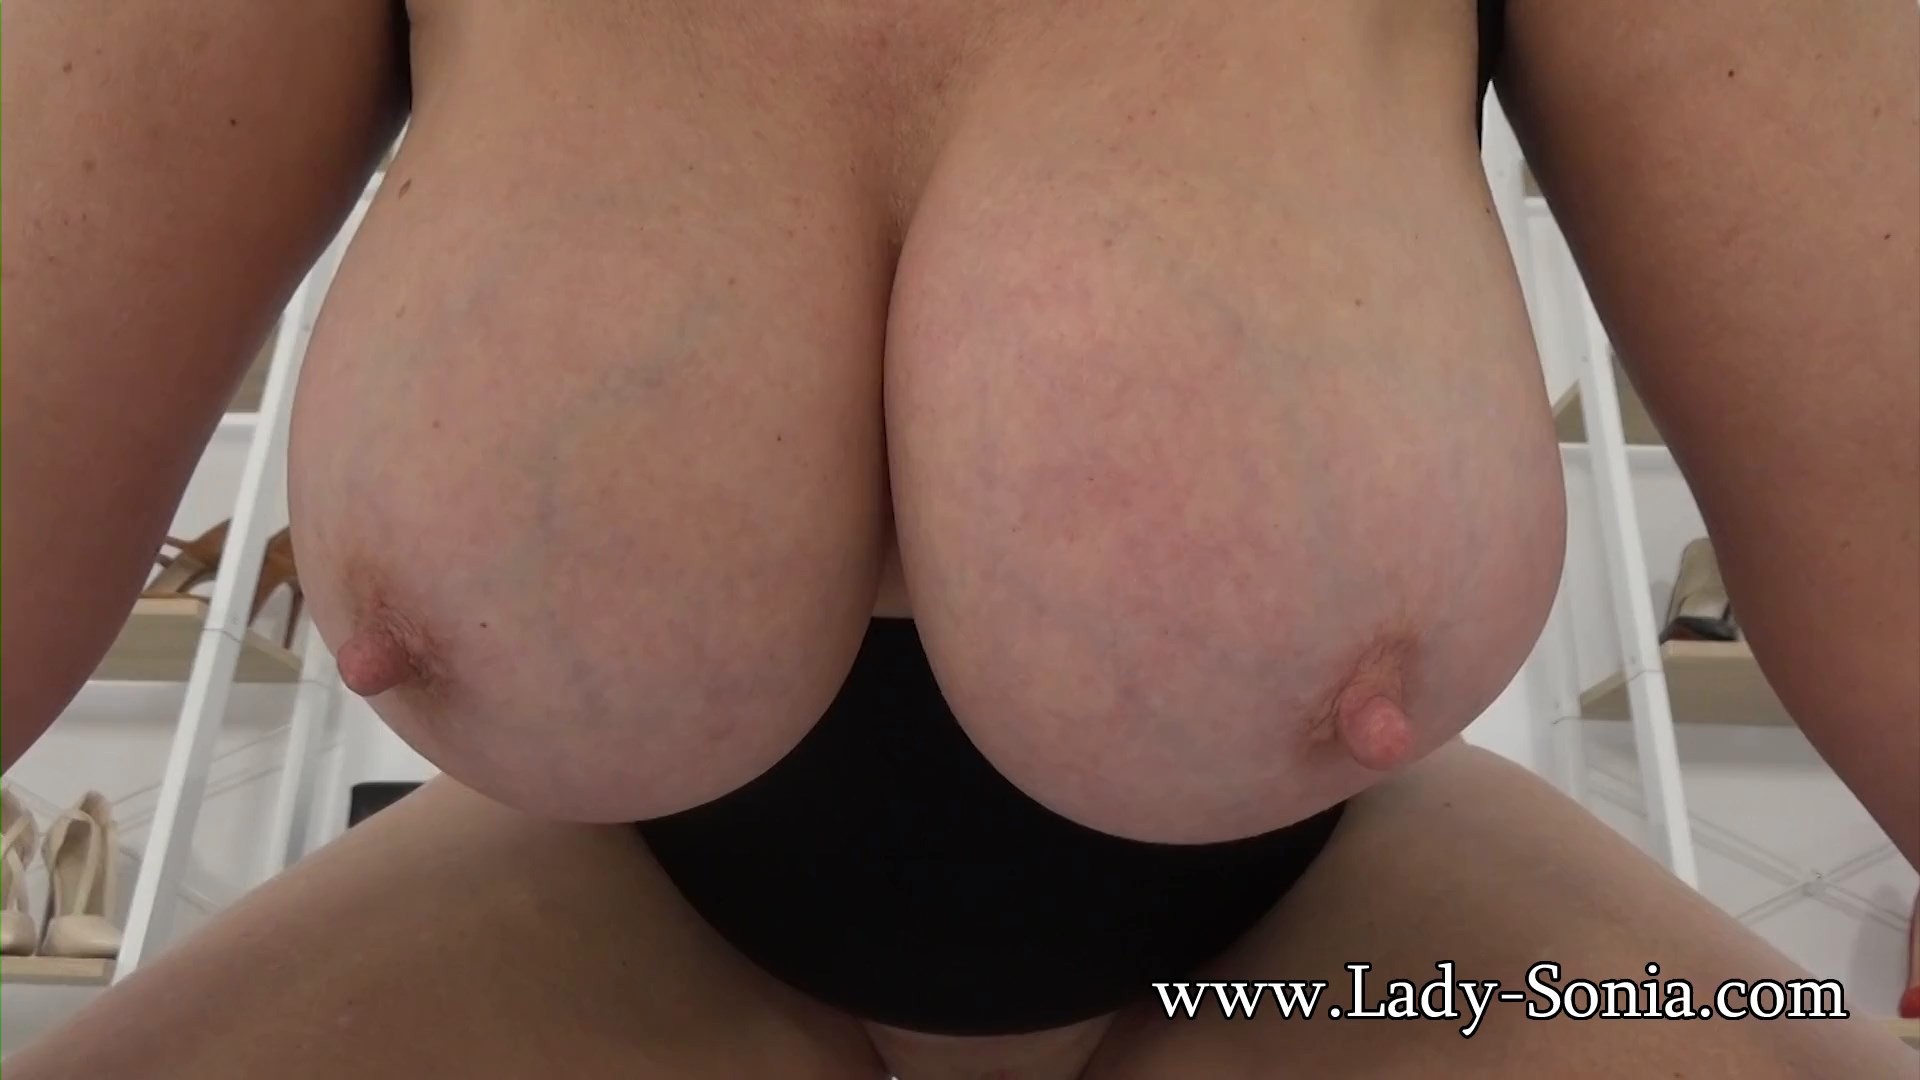 Lady Sonia - Aunties Big 36f Tits As You Edge